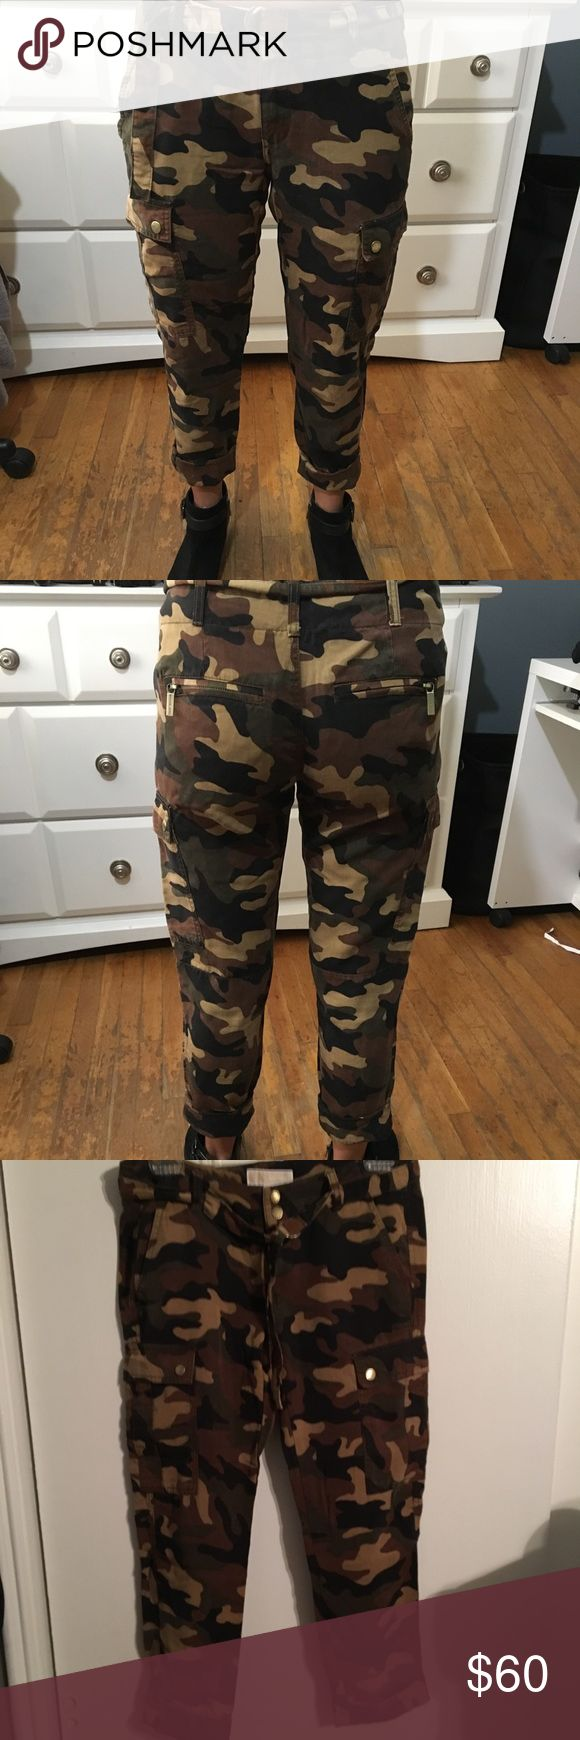 Michael Kors  camo pants Stylish and fun previously loved camouflaged pants by Michael Kors. MICHAEL Michael Kors Pants Ankle & Cropped